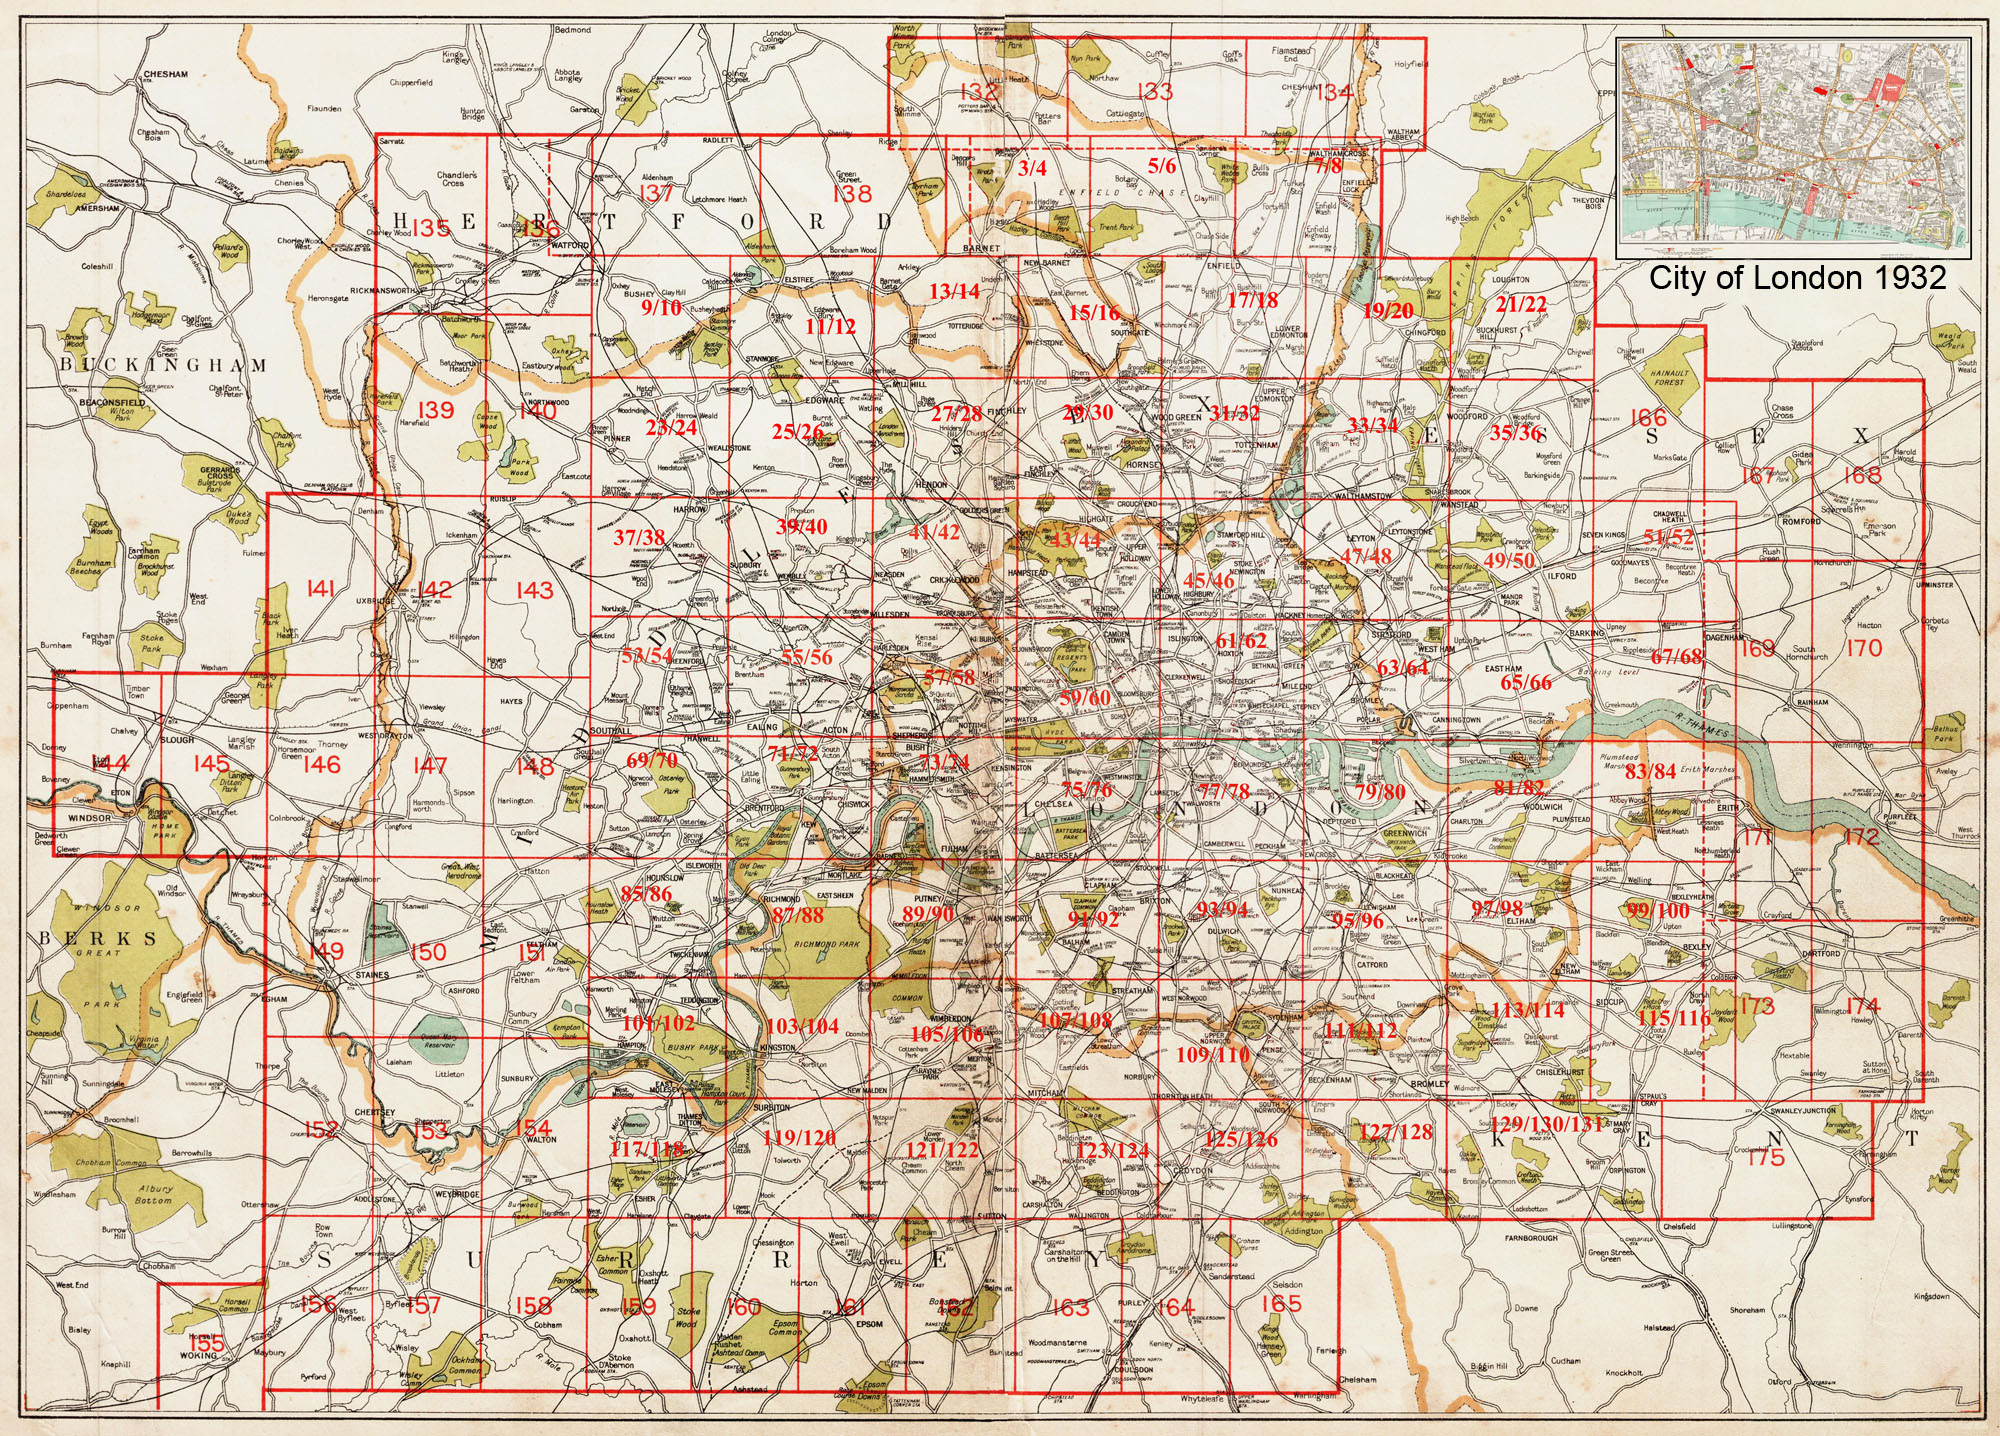 Old Maps Of London And Greater London In 1932 As Instant Downloads